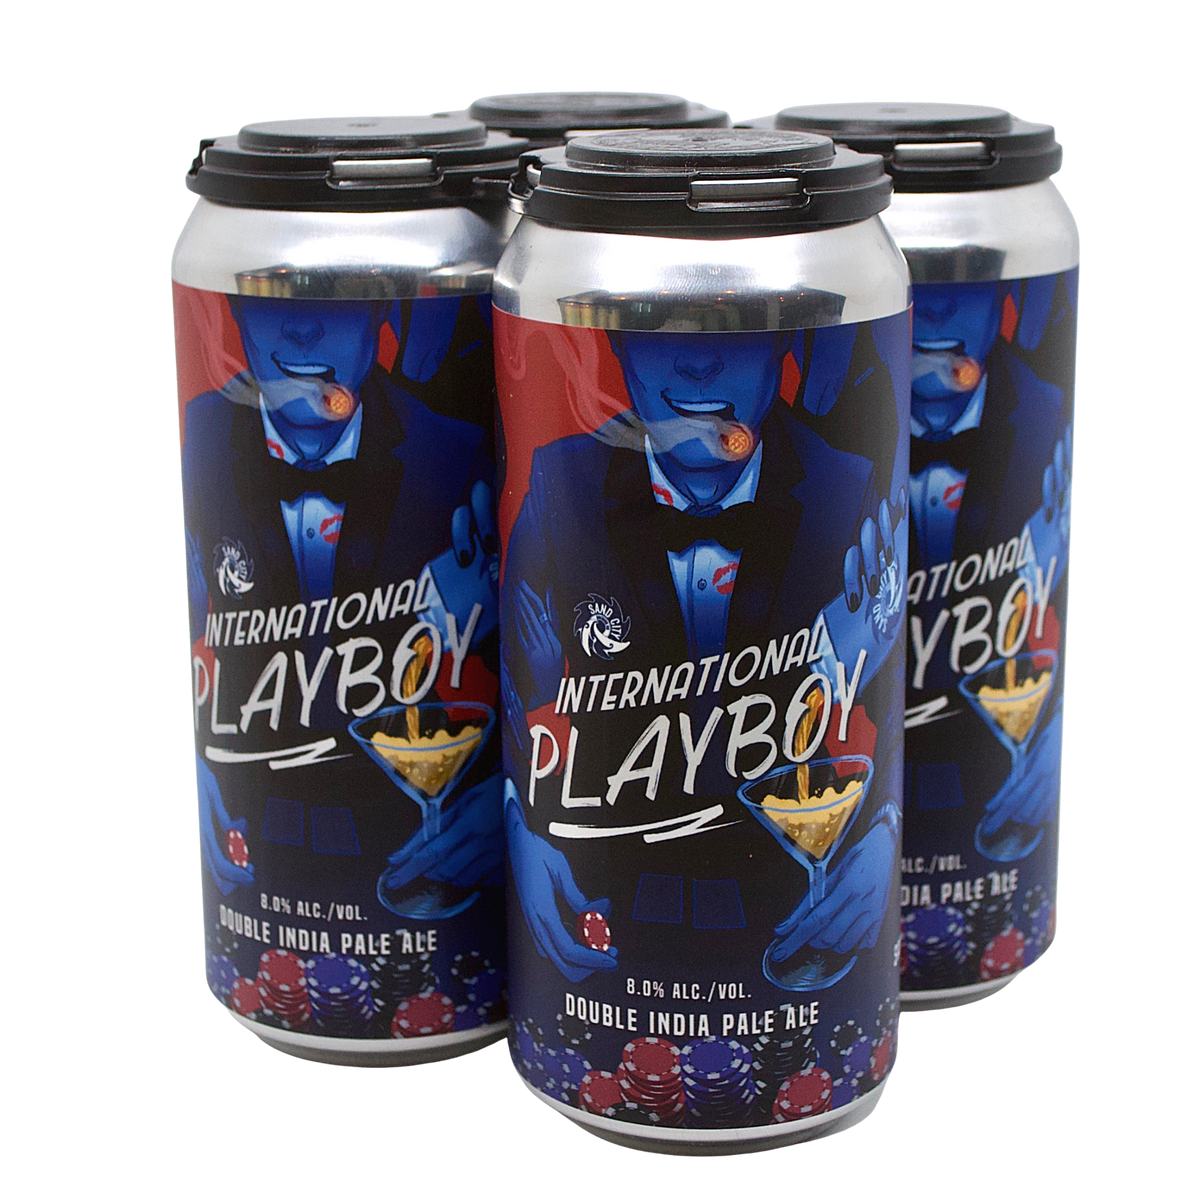 Sand City International Playboy 4-Pack (Double IPA)